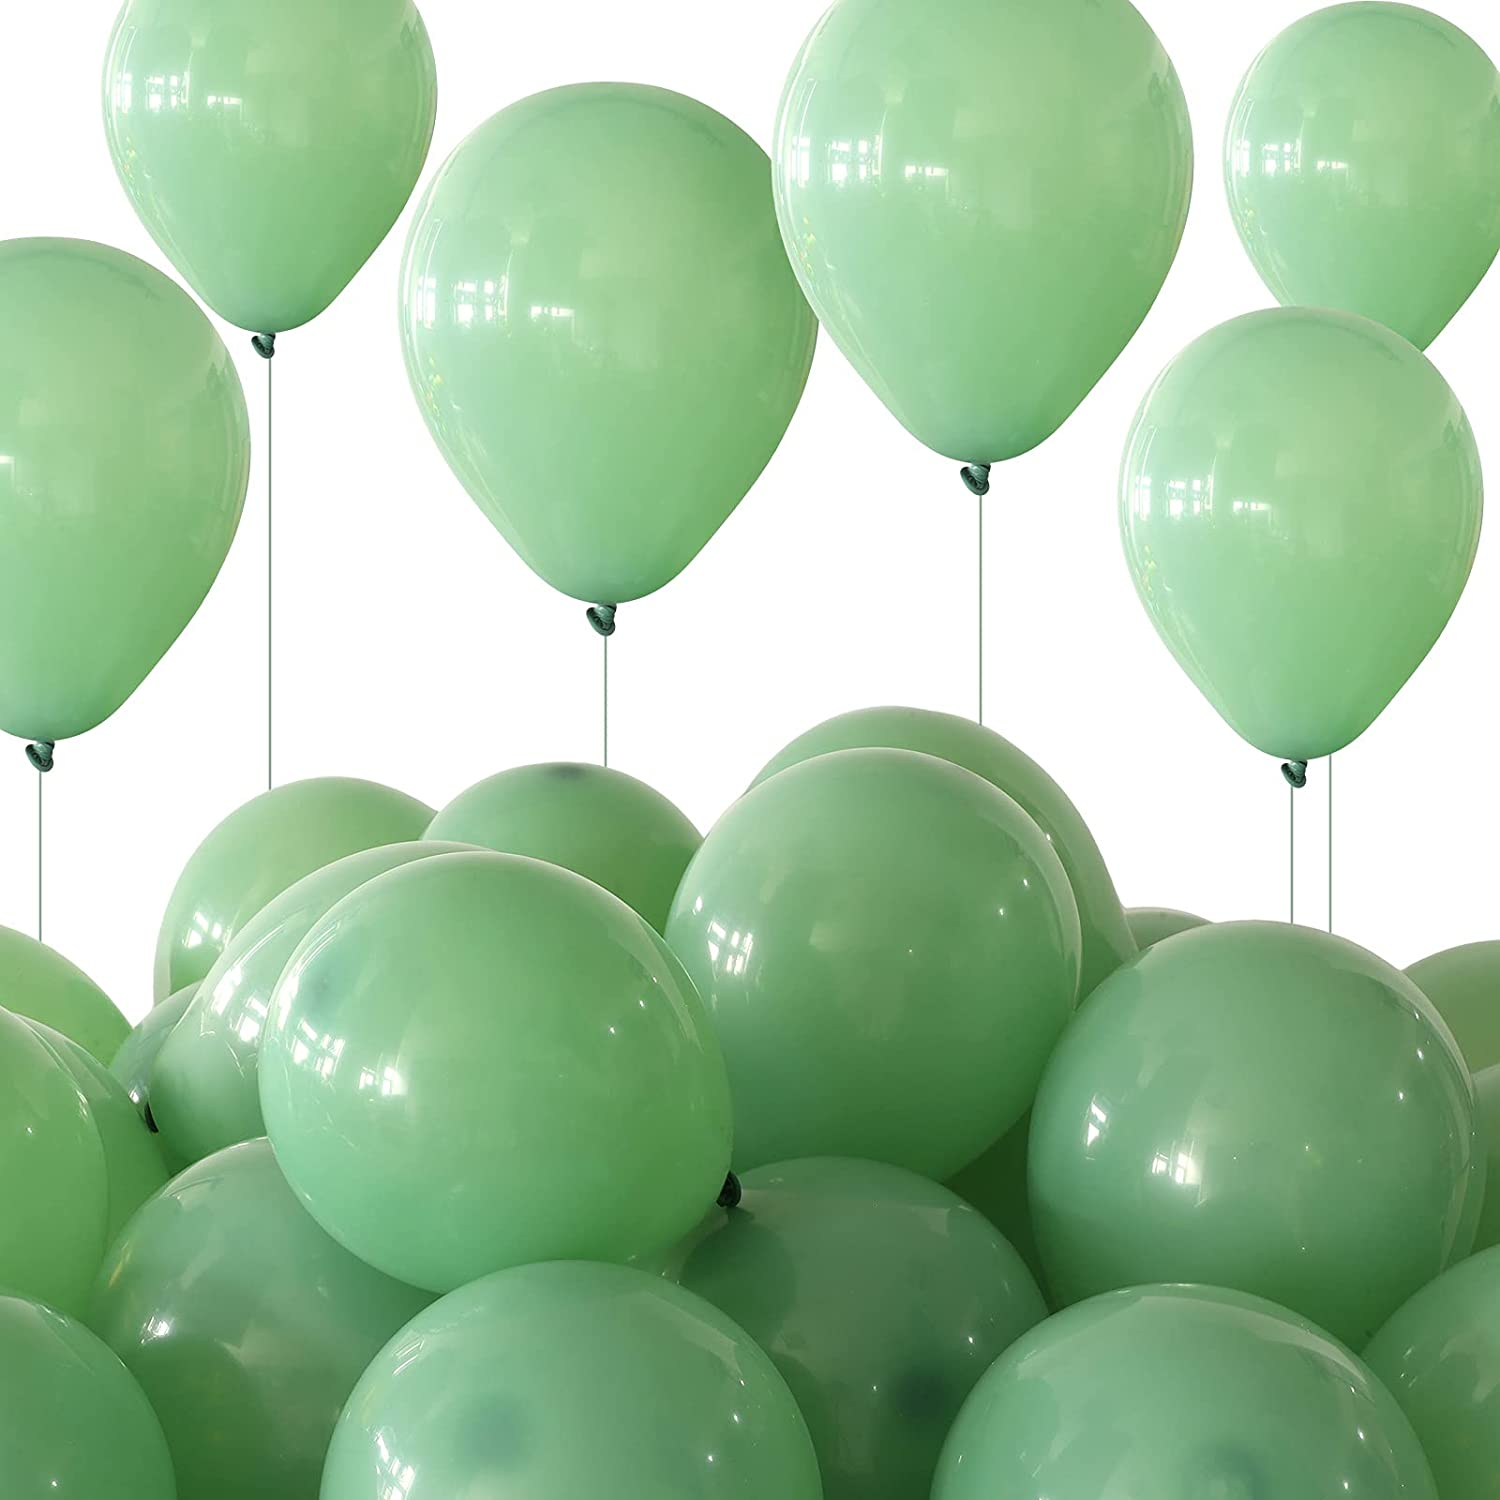 100 Pieces 5 Inches Balloon Latex Balloons Eucalyptus Party Latex Balloon for Wedding Birthday Baby Shower Theme Party Decoration (Grass Green)